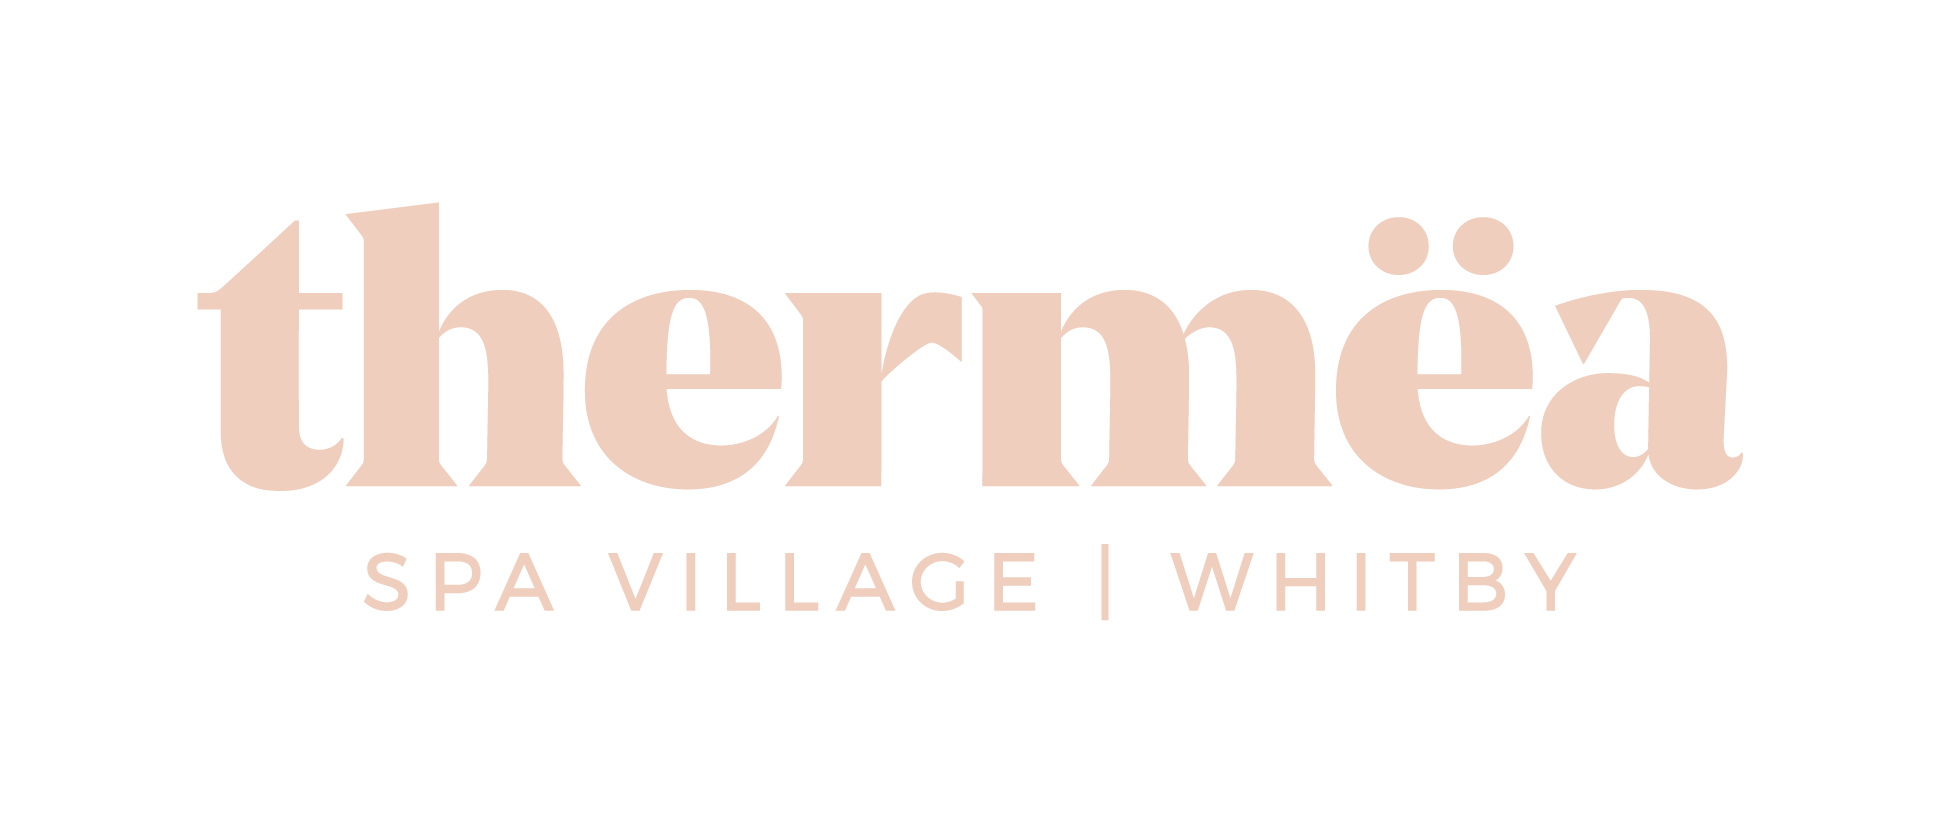 Thermëa spa village | Whitby